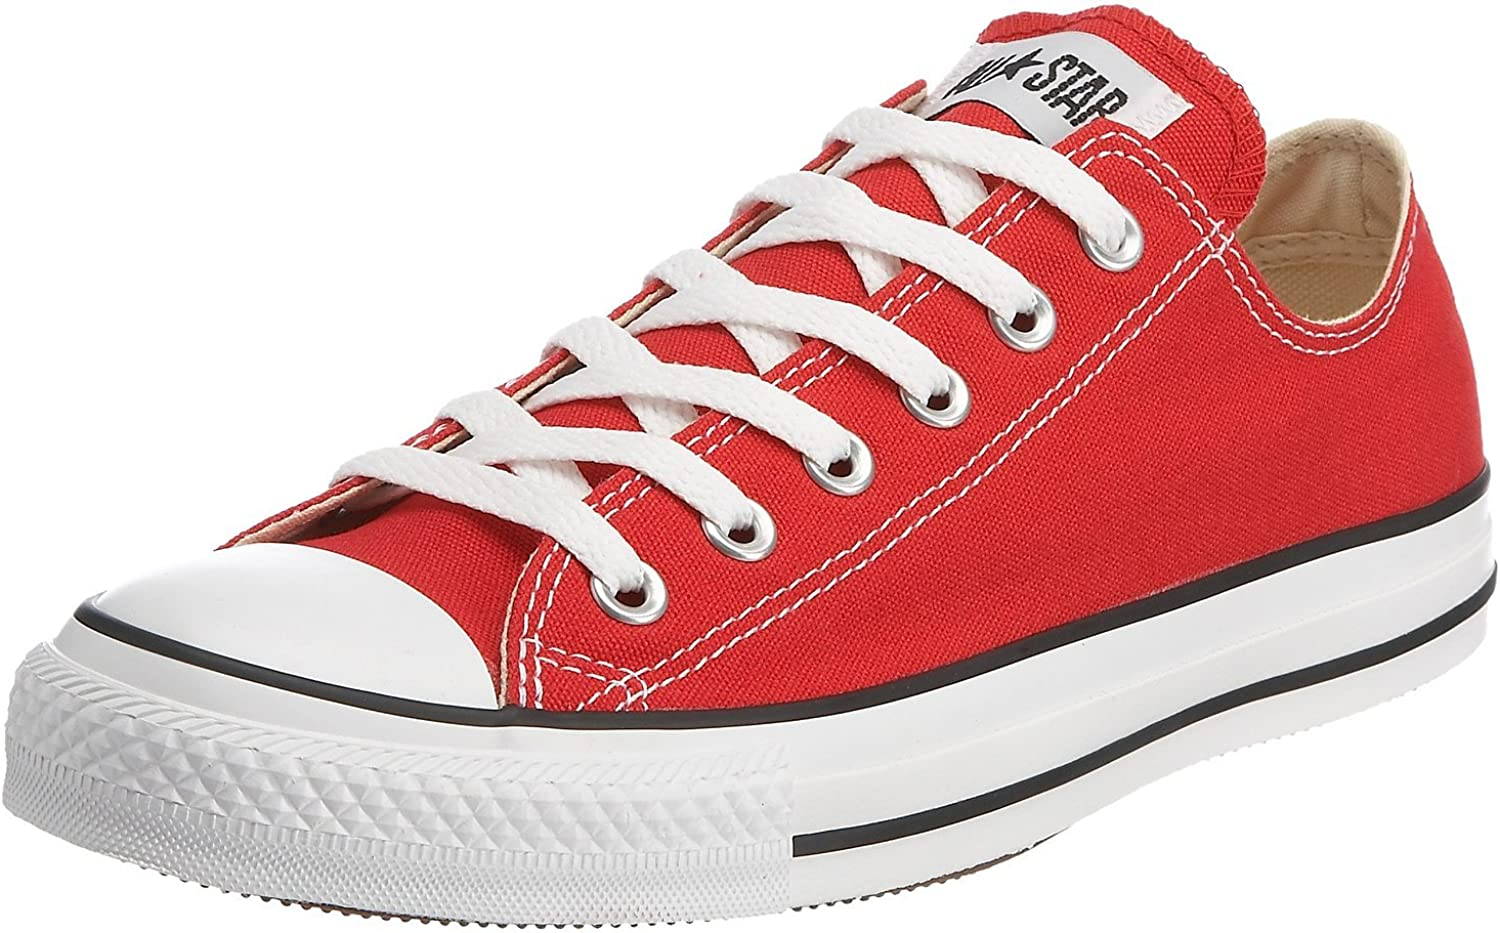 Converse Unisex Chuck Taylor All Star Low Basketball shoes (13 B(M) US Women 11 D(M) US Men, Red)